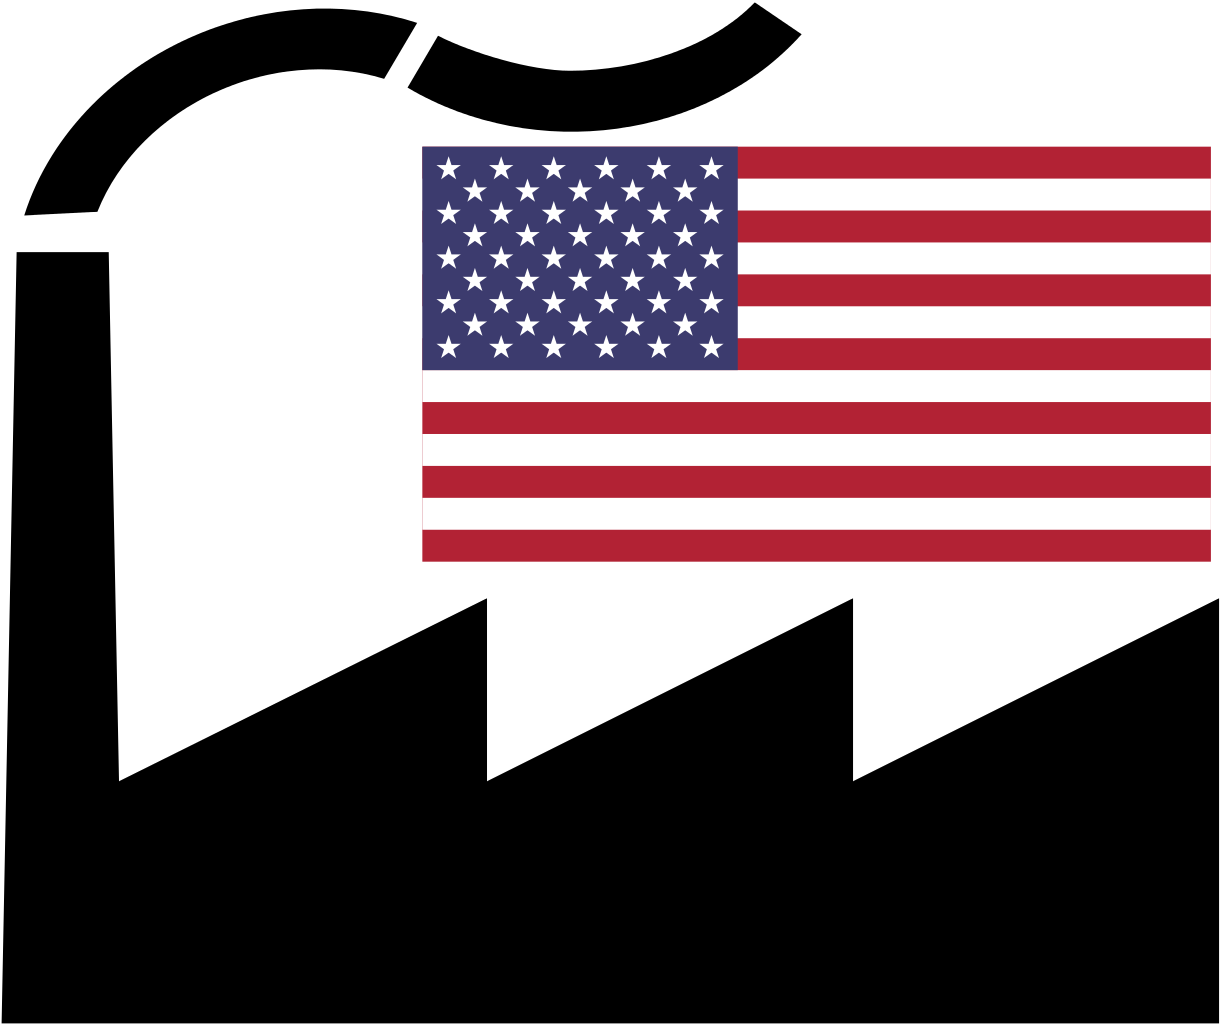 banner freeuse File factory wikipedia filefactory. Usa svg red